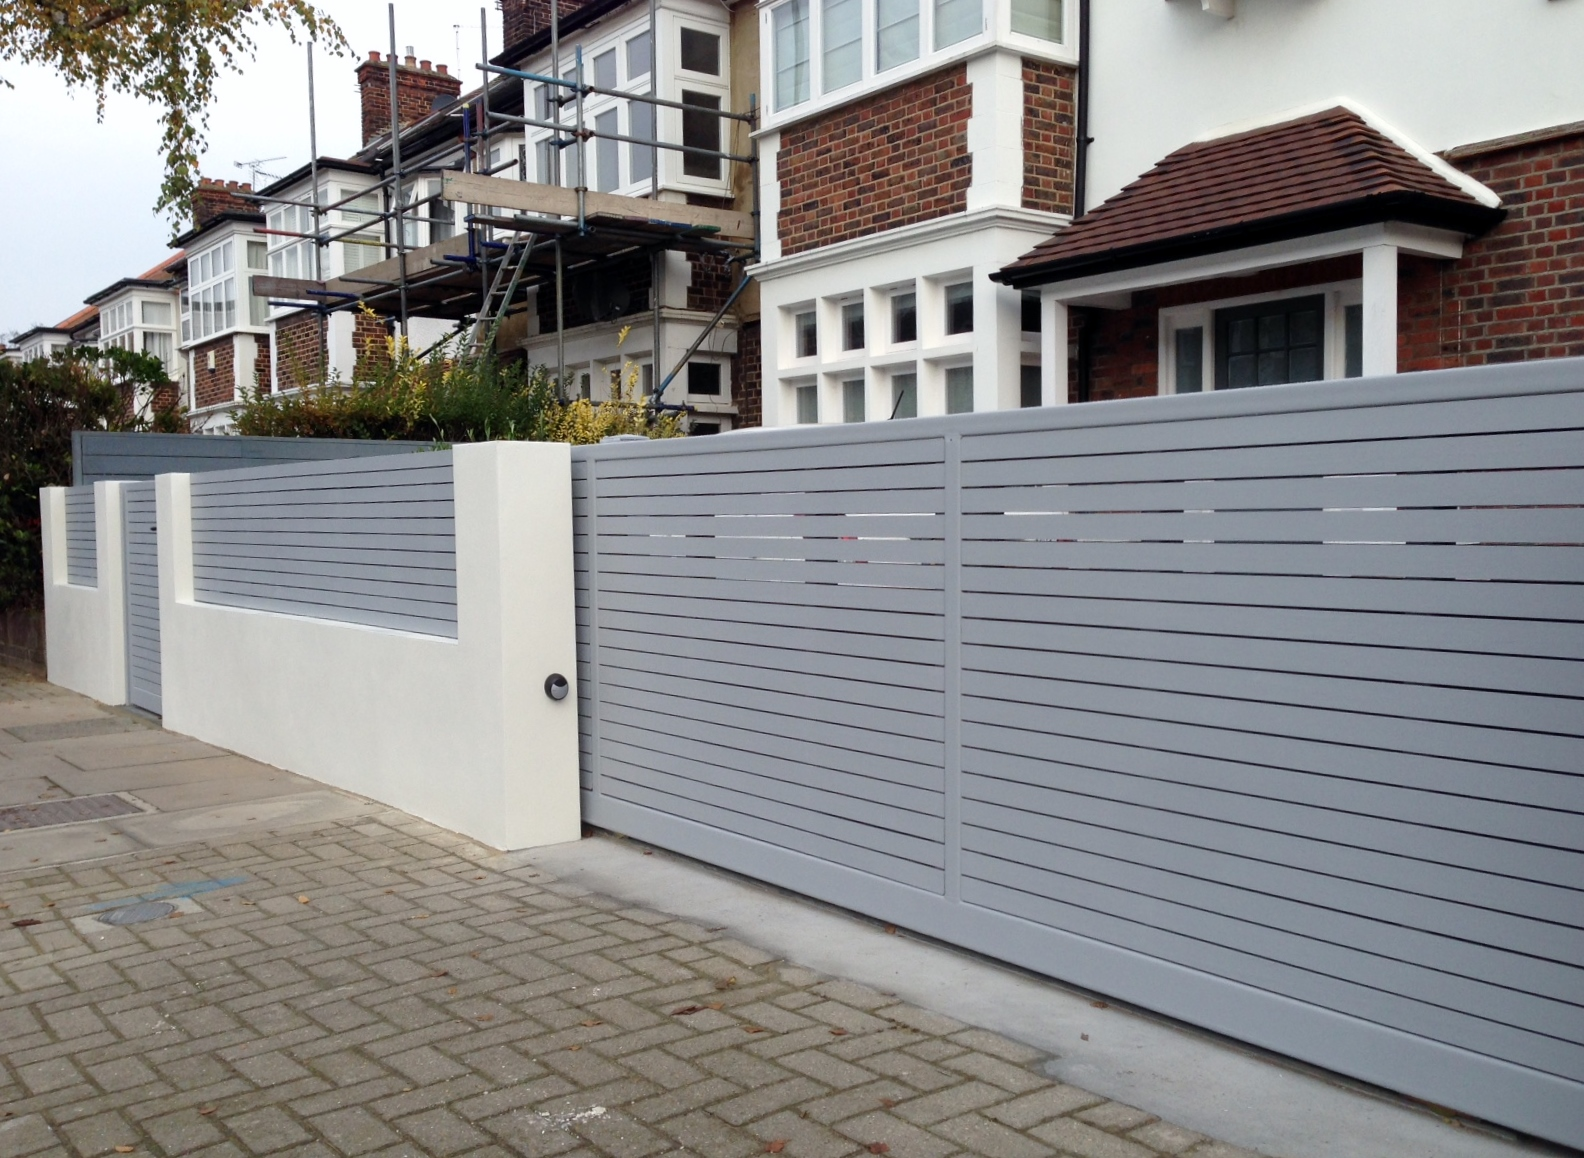 front boundary wall screen automated electronic gate installation grey wooden fence bike store modern garden design balham clapham london (13)